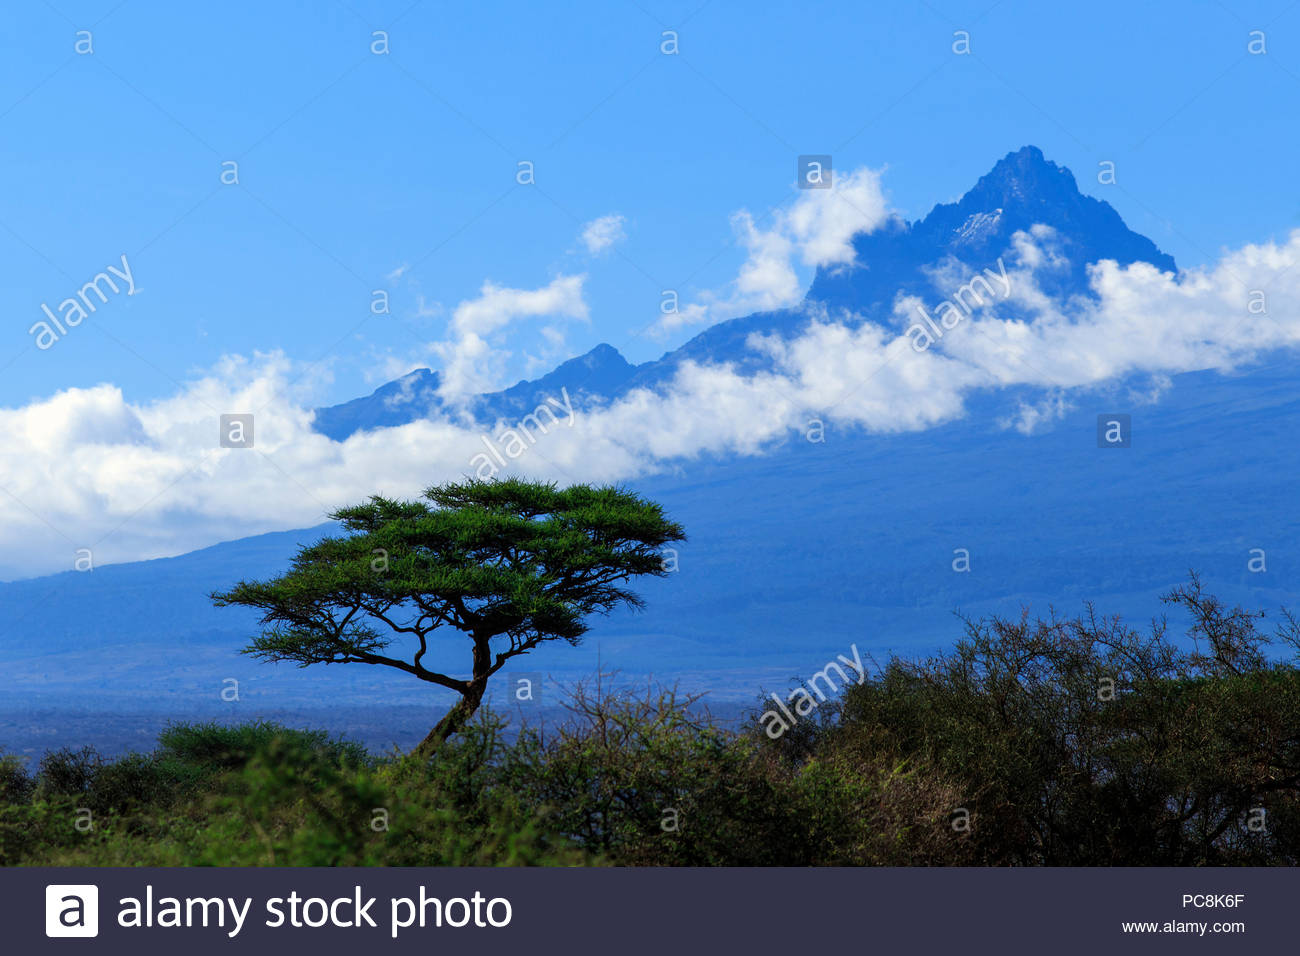 An Acacia tree, blue sky, and clouds around Mawenzi, the smaller peak of Mount Kilimanjaro. - Stock Image